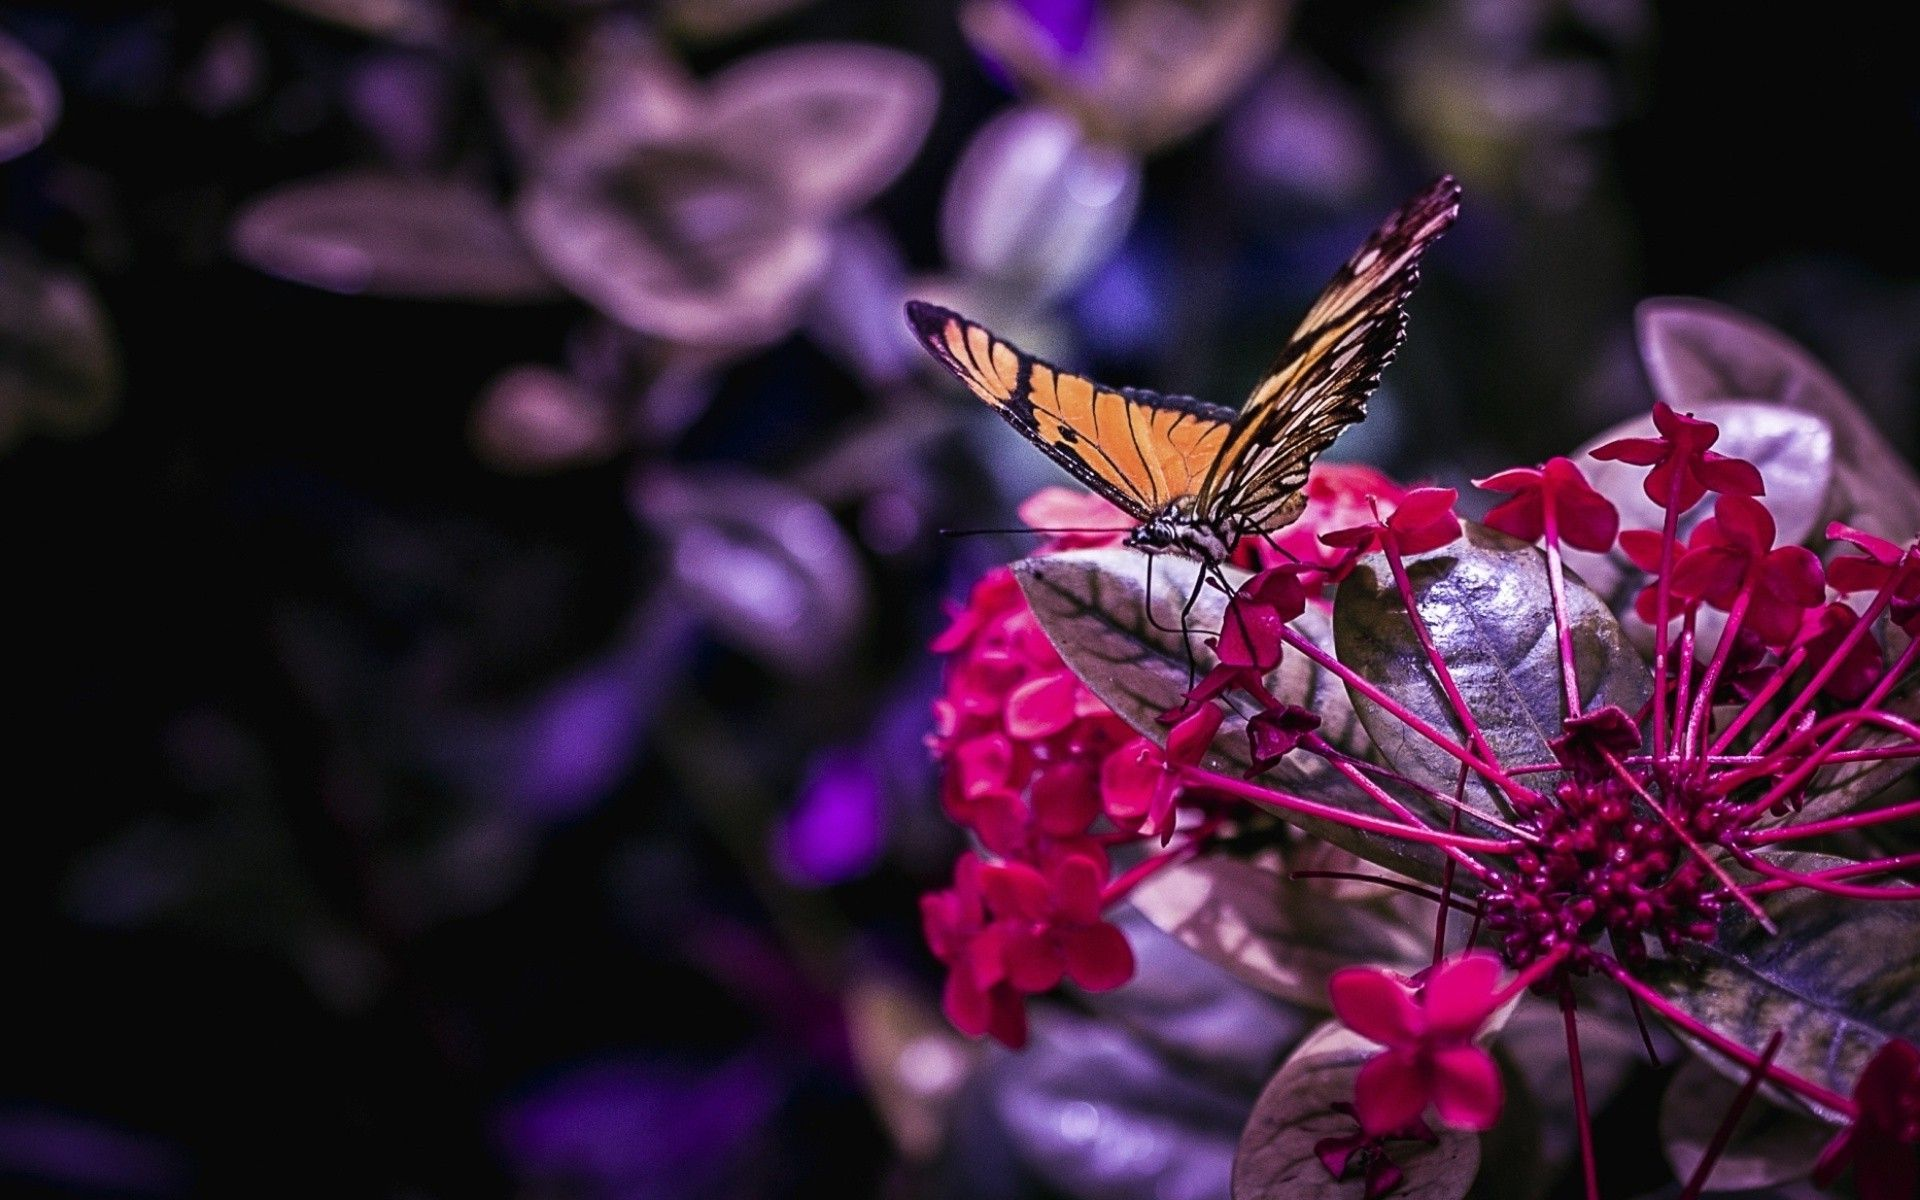 Butterfly Tumblr Wallpapers - Wallpaper Cave